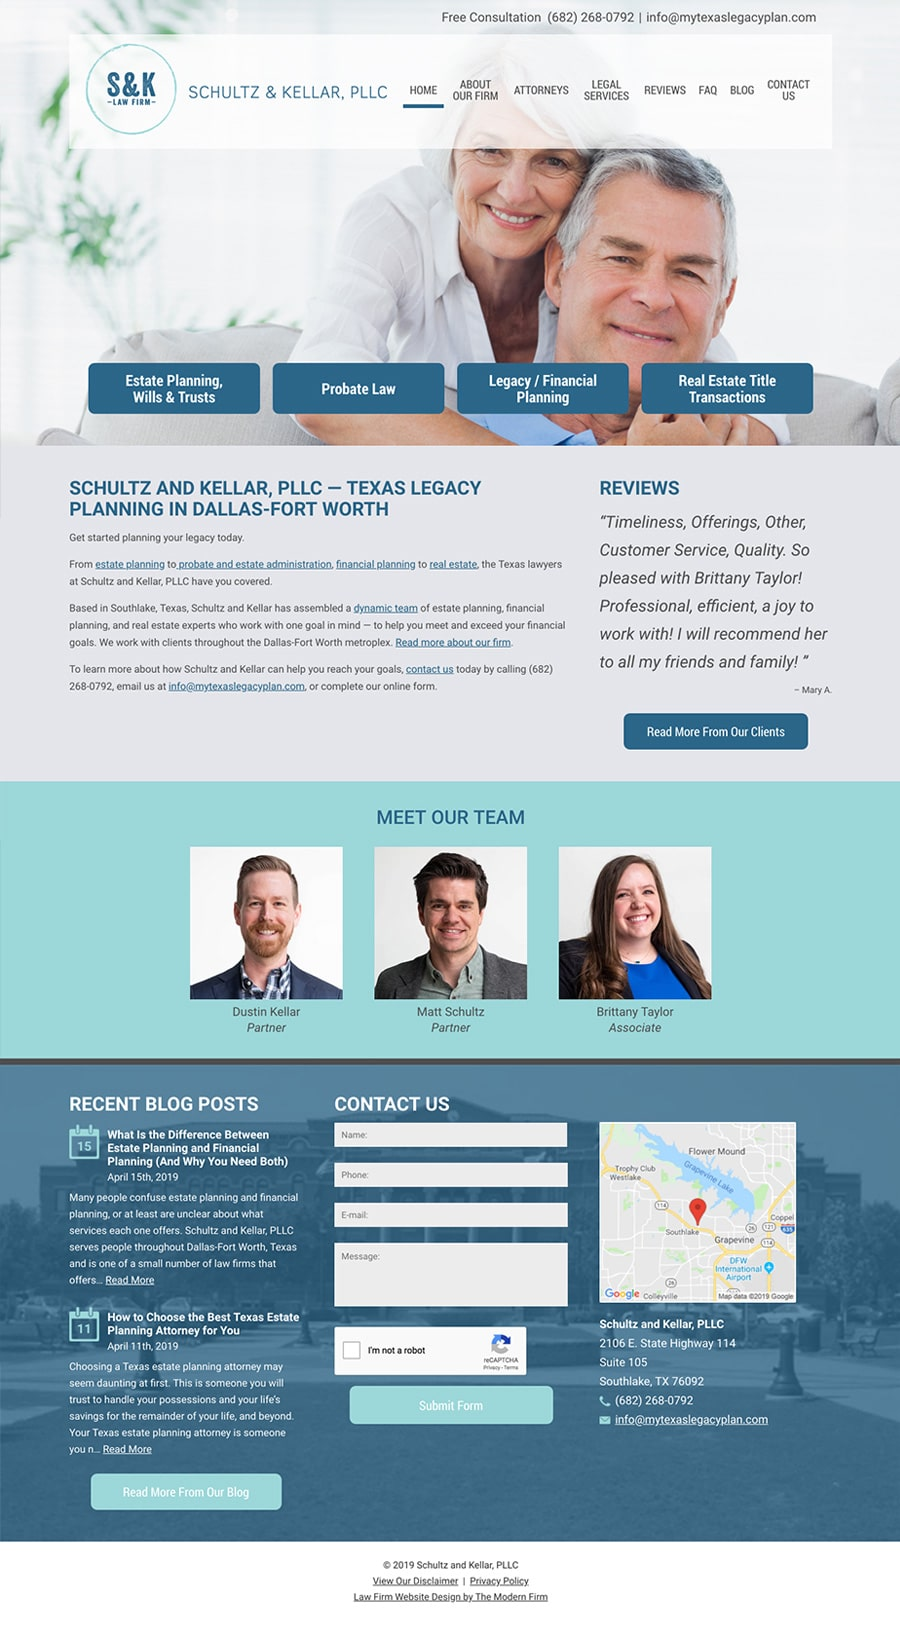 Law Firm Website Design for Schultz and Kellar, PLLC